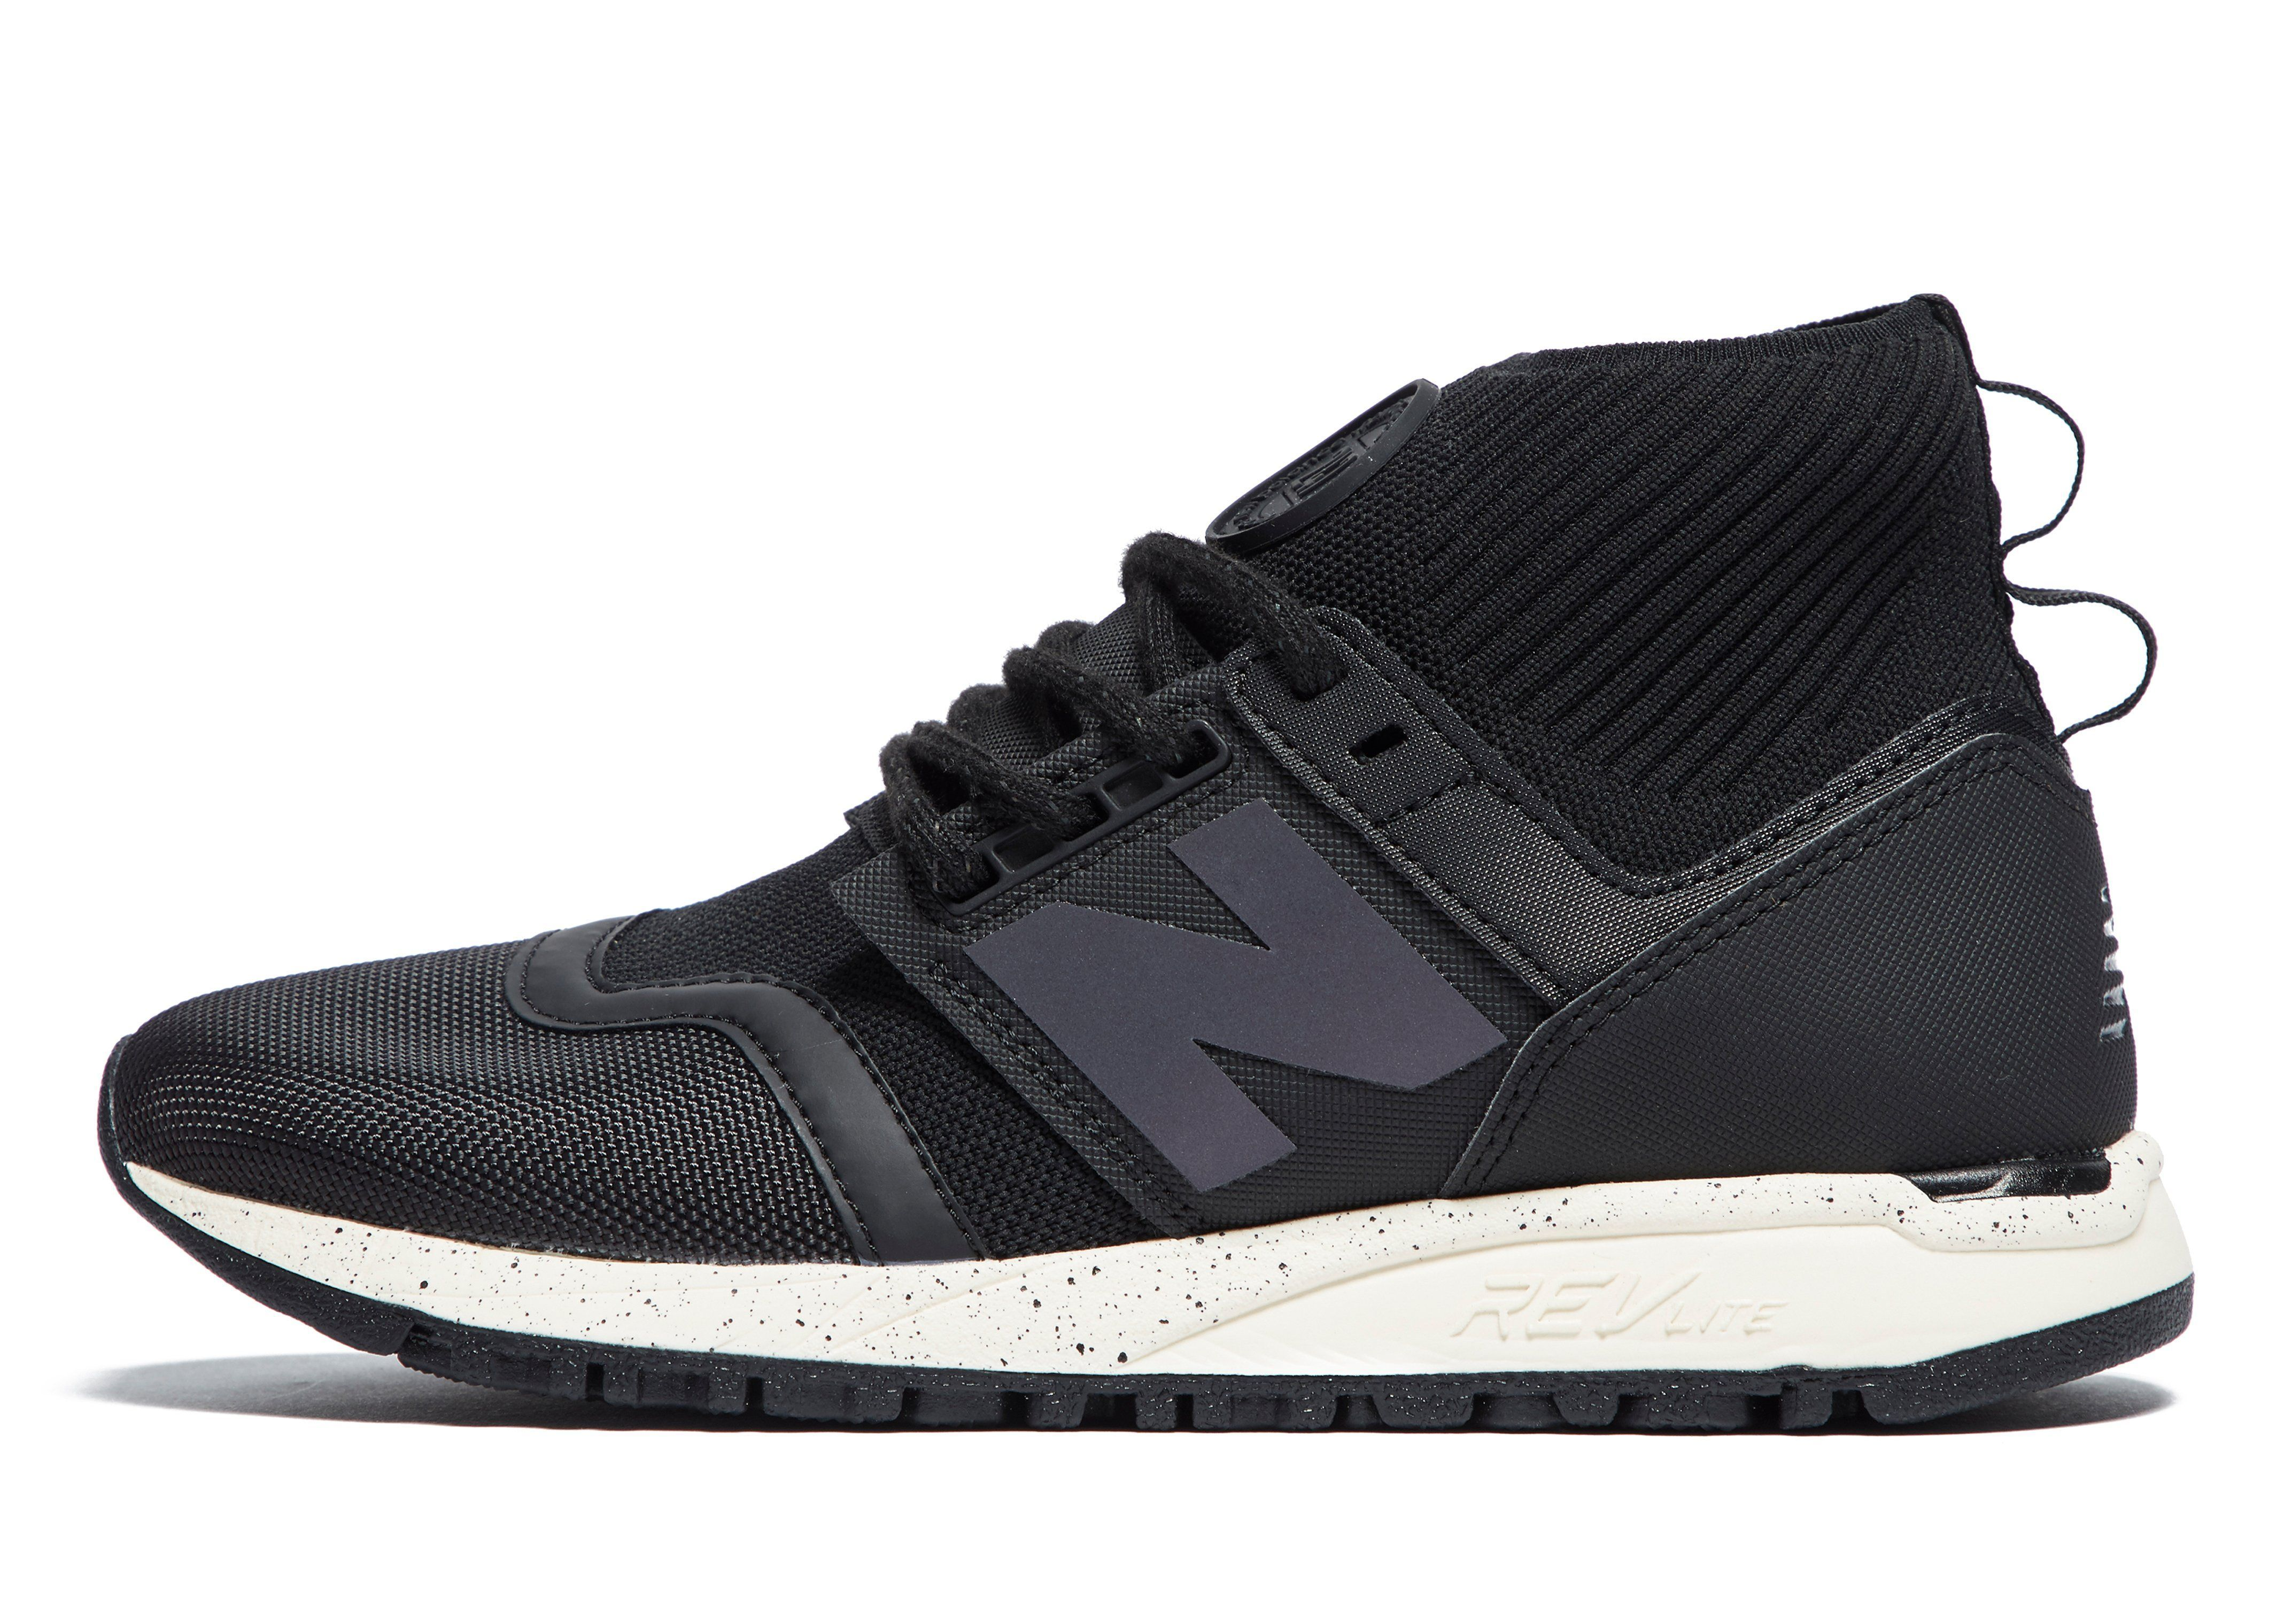 New Balance 247 Mid Women's - Shop online for New Balance 247 Mid Women's  with JD